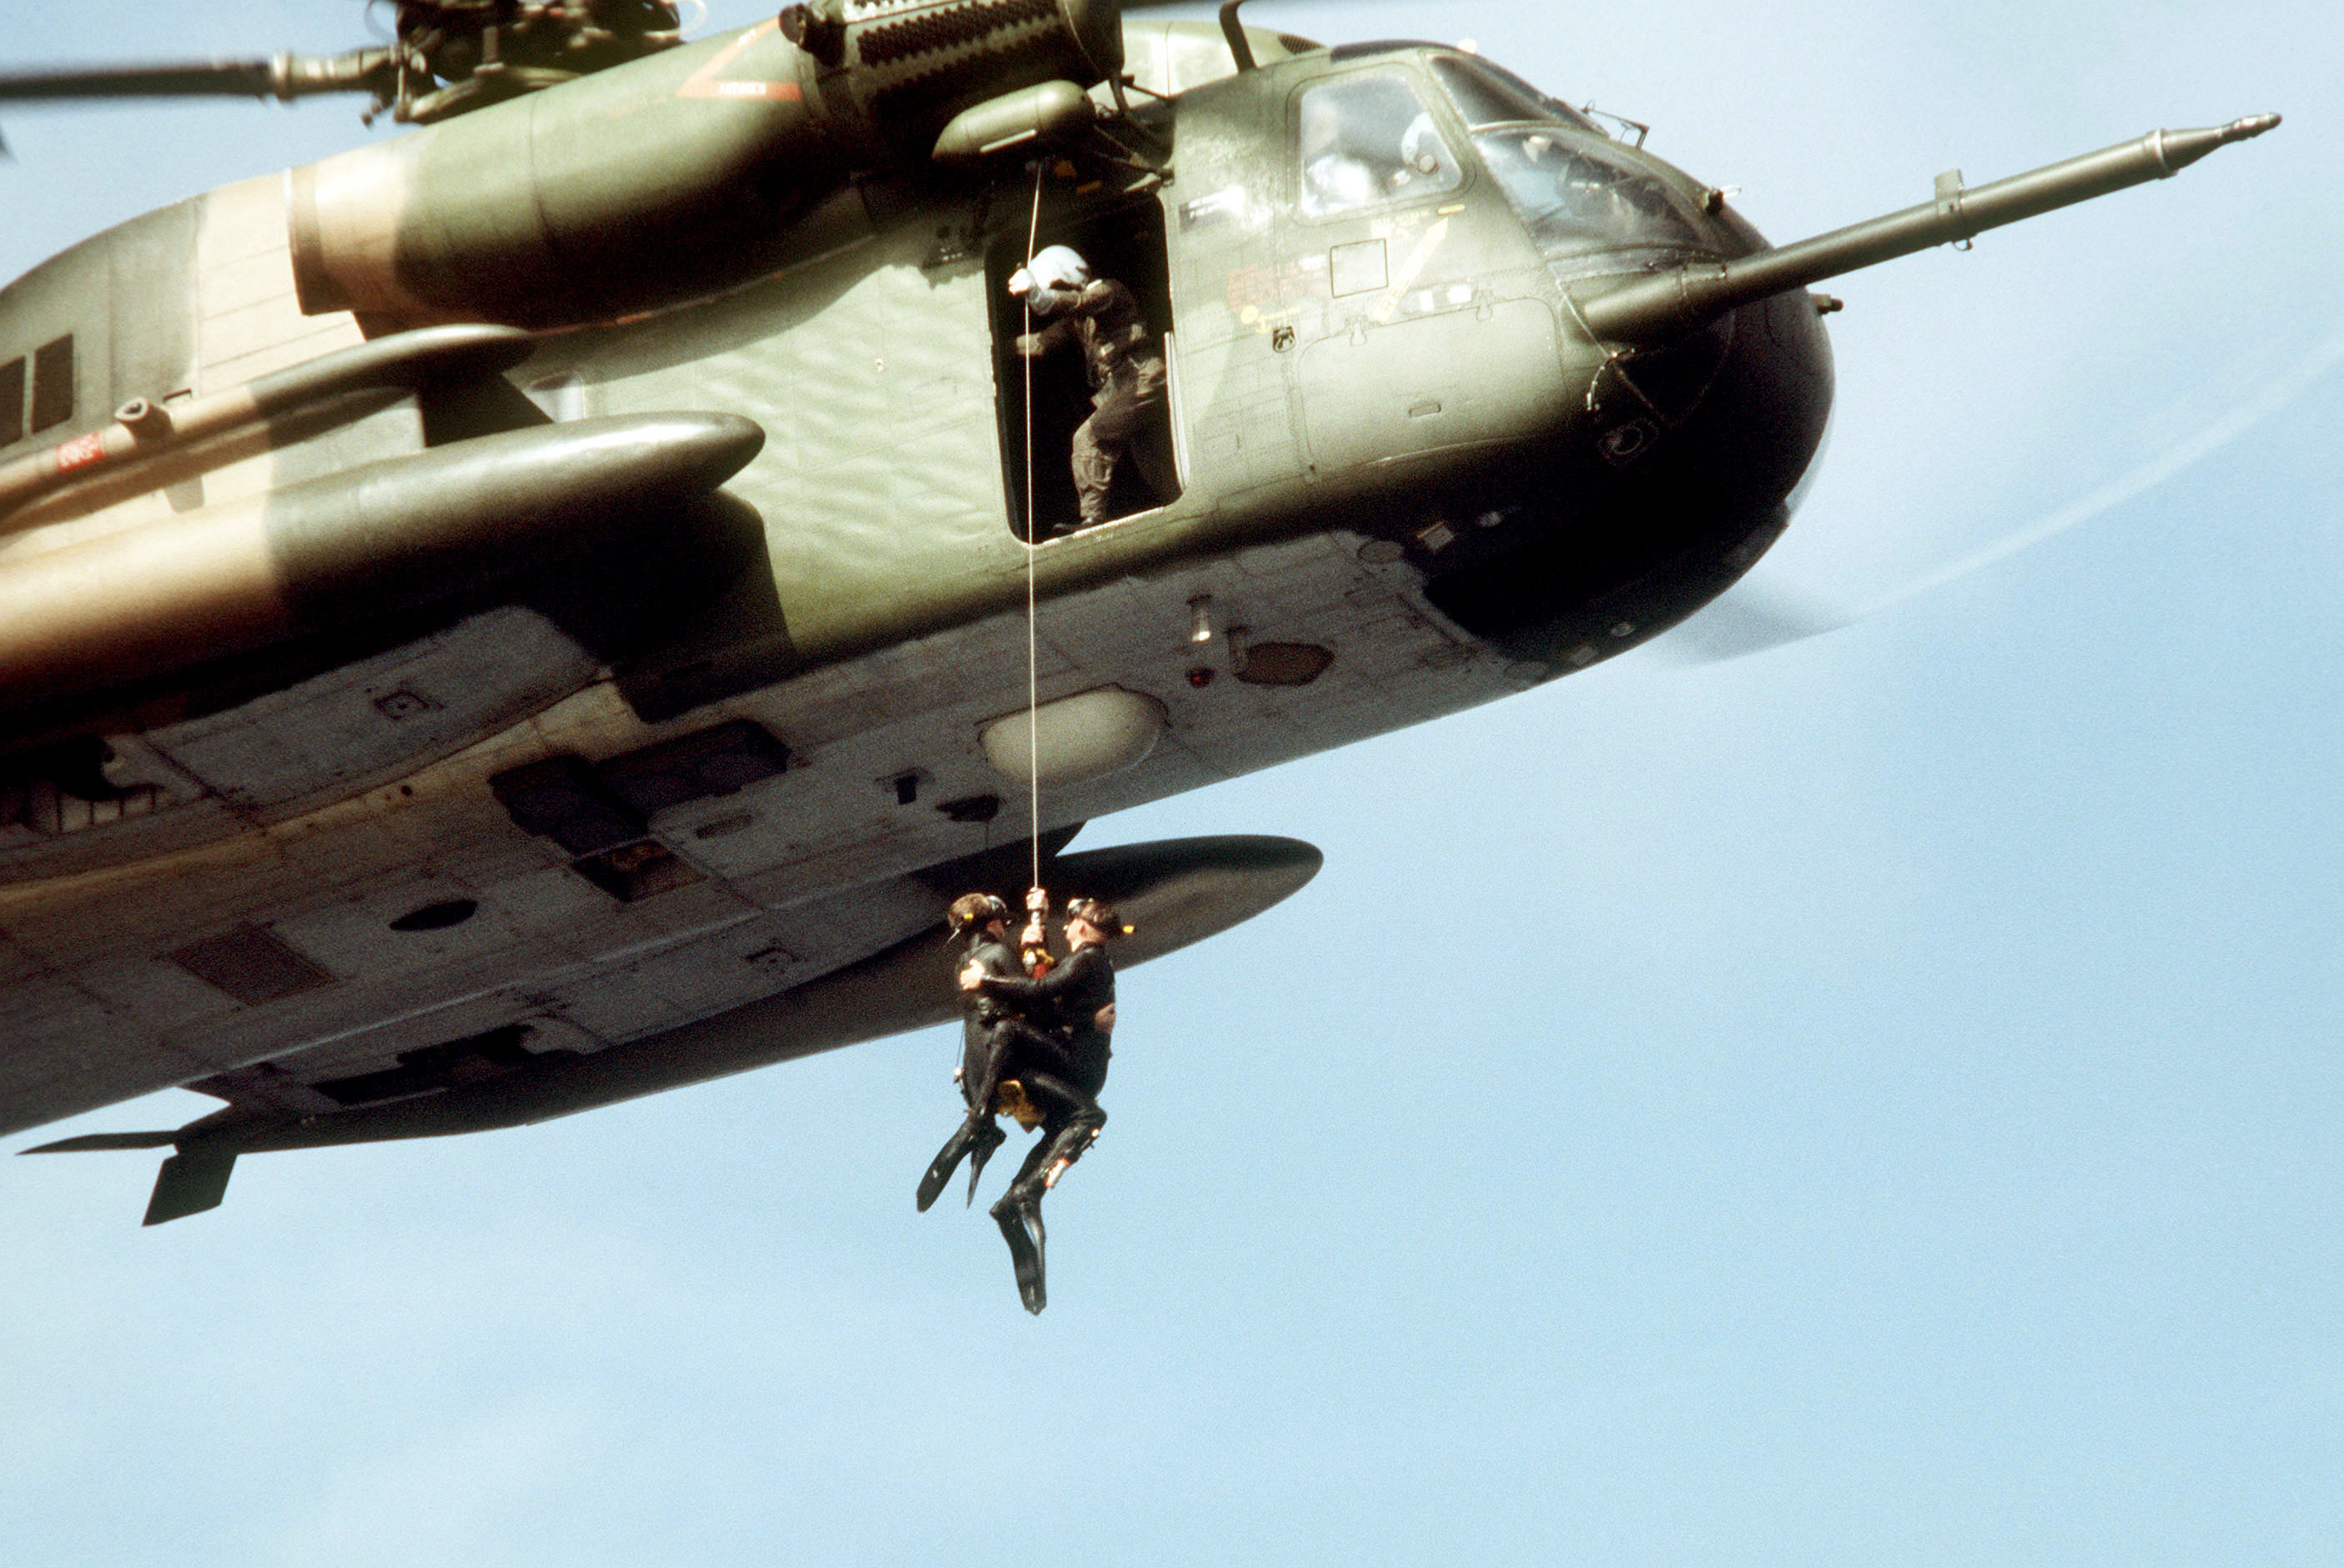 hh 53 helicopter with File 55th Arrs Pj Hoisted Aboard Hh 53c 1987 on Military Helicopters May Get Gunshot Location System in addition 370769264170 likewise 21287413163 together with  furthermore Avions et helicopteres militaires au 187 4676445.